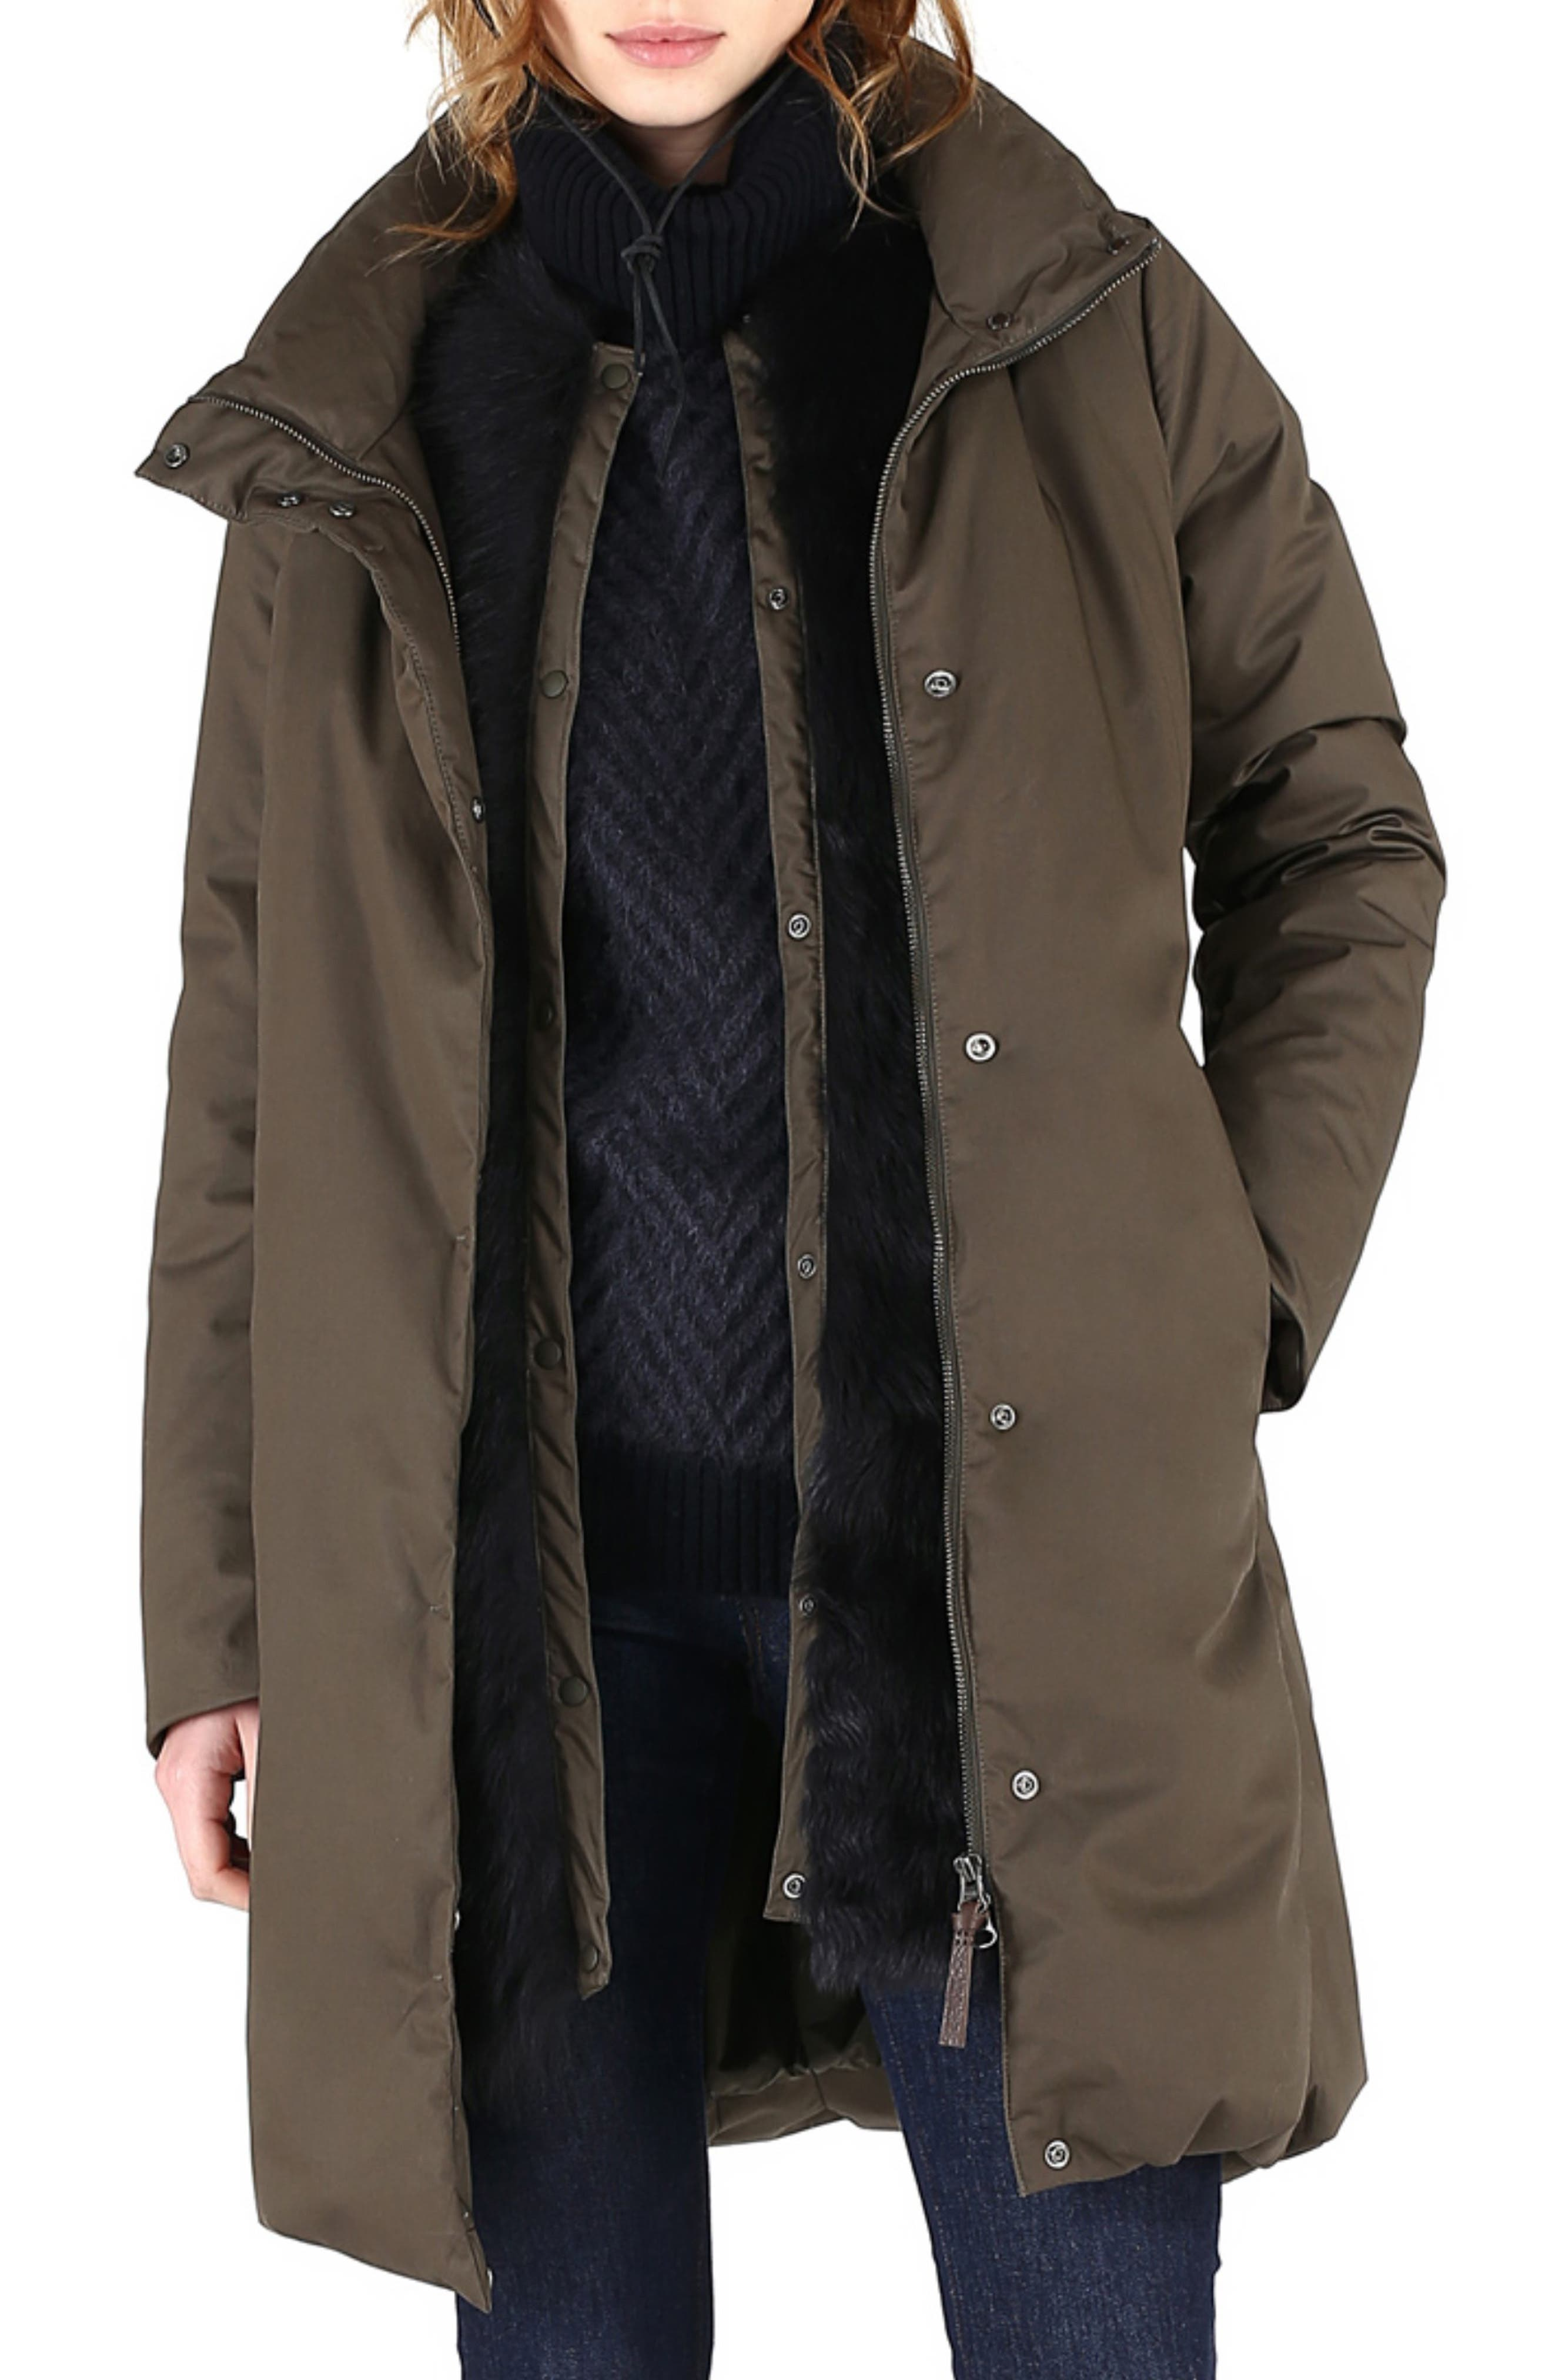 Cocoon Genuine Shearling Lined Down Coat,                             Main thumbnail 1, color,                             MILITARY OLIVE